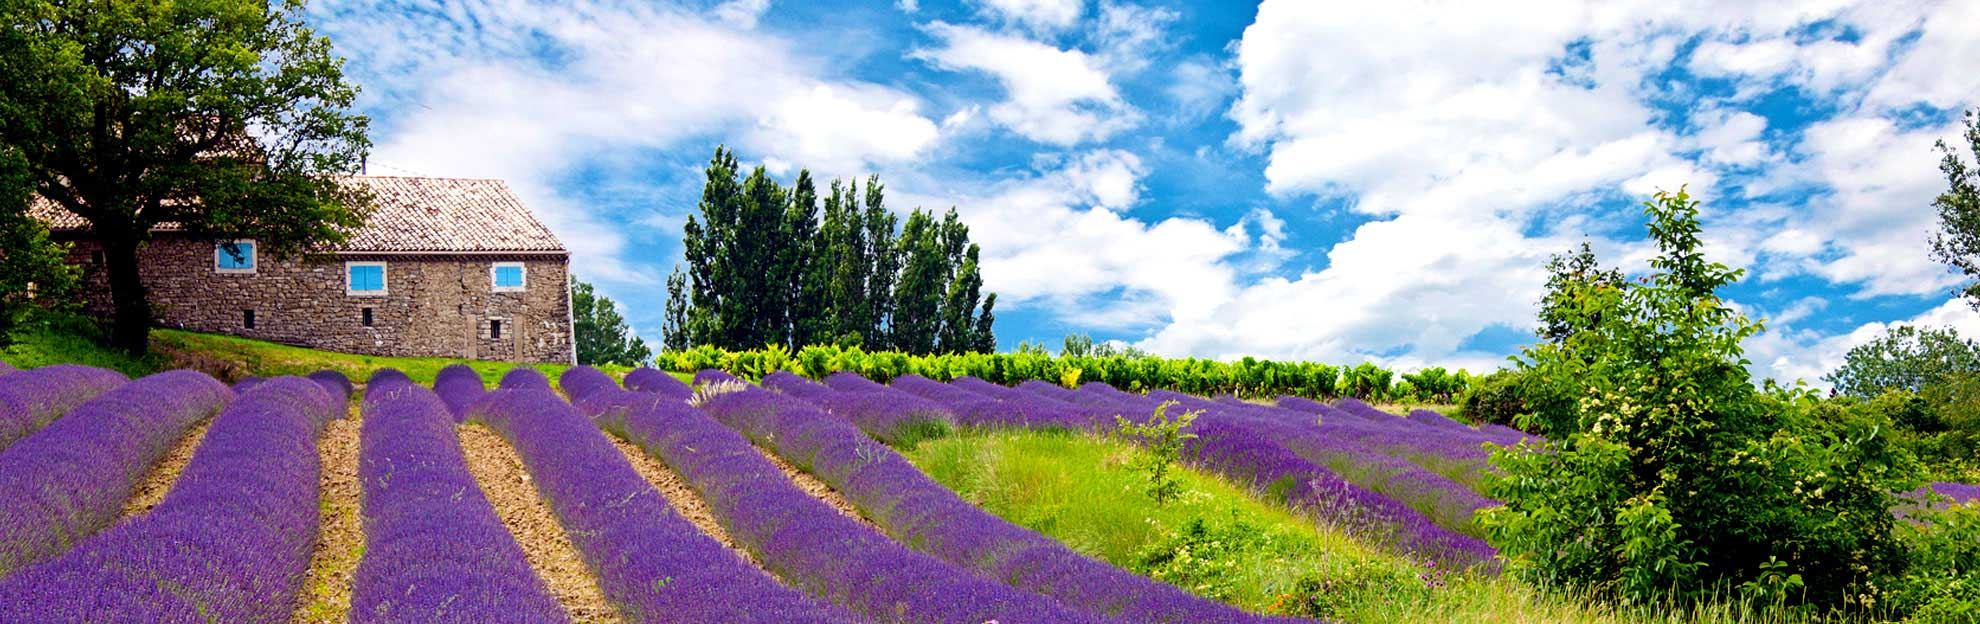 lavender provence tour from french riviera